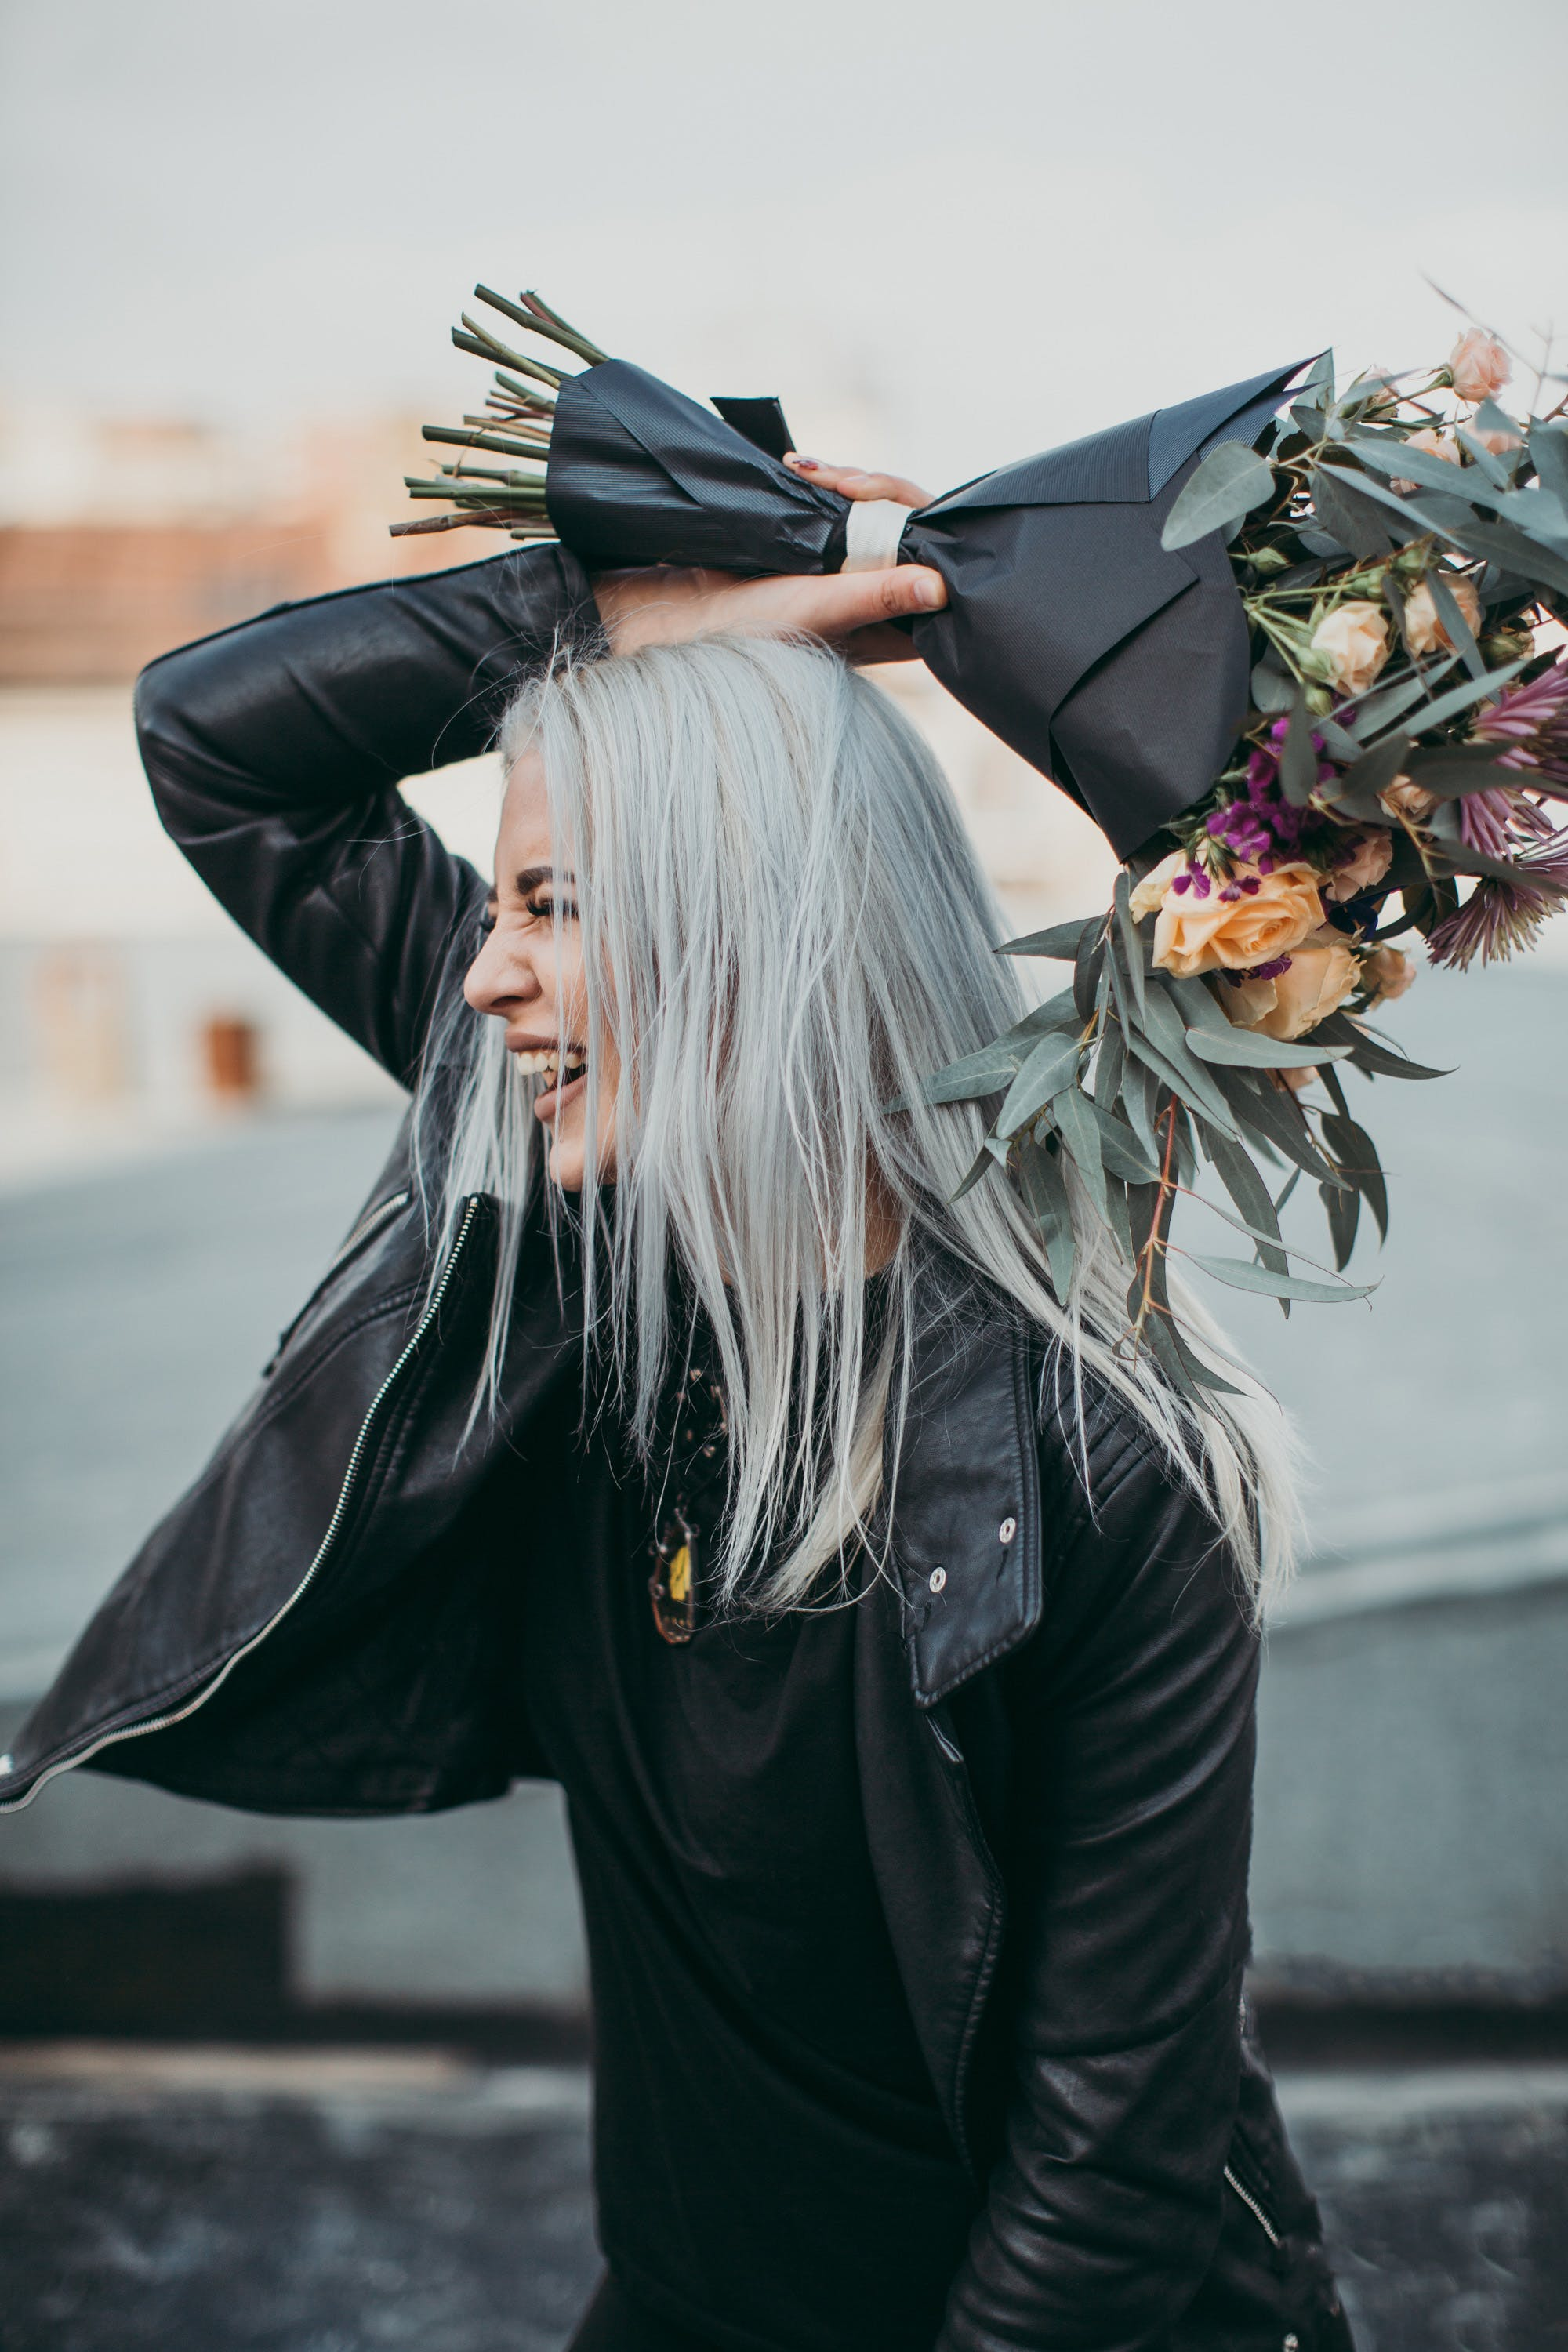 Woman Wearing Black Leather Jacket Holding Flower Bouquet